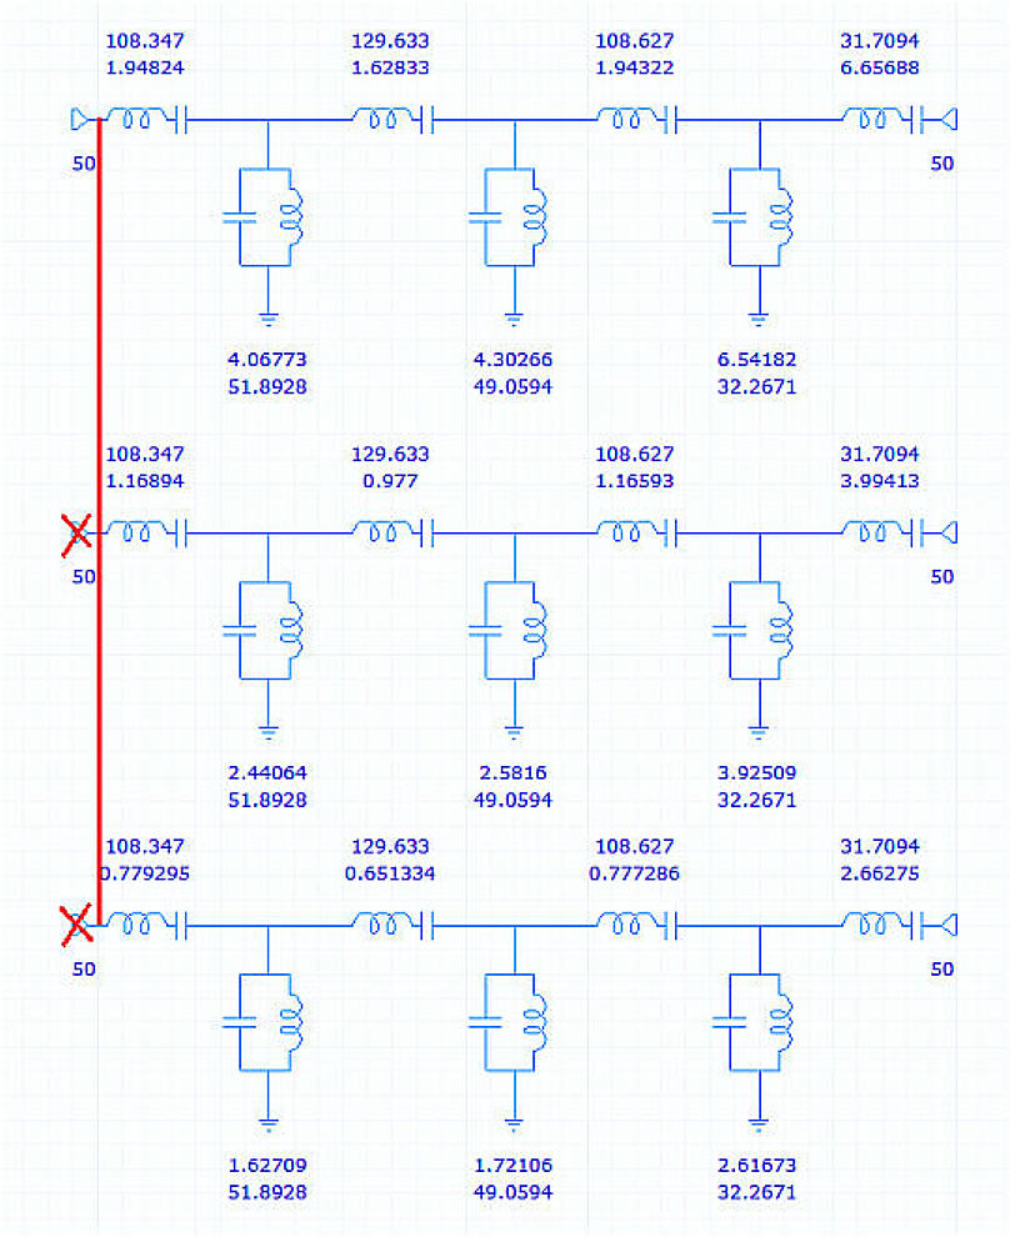 User Guide 134 Ifilter Filter Wizard In Fact With Only A Small Addition This Circuit Is Capable Of The Channels Are Normally Connected At Source End And There One Termination However For Display Purposes Displayed As If